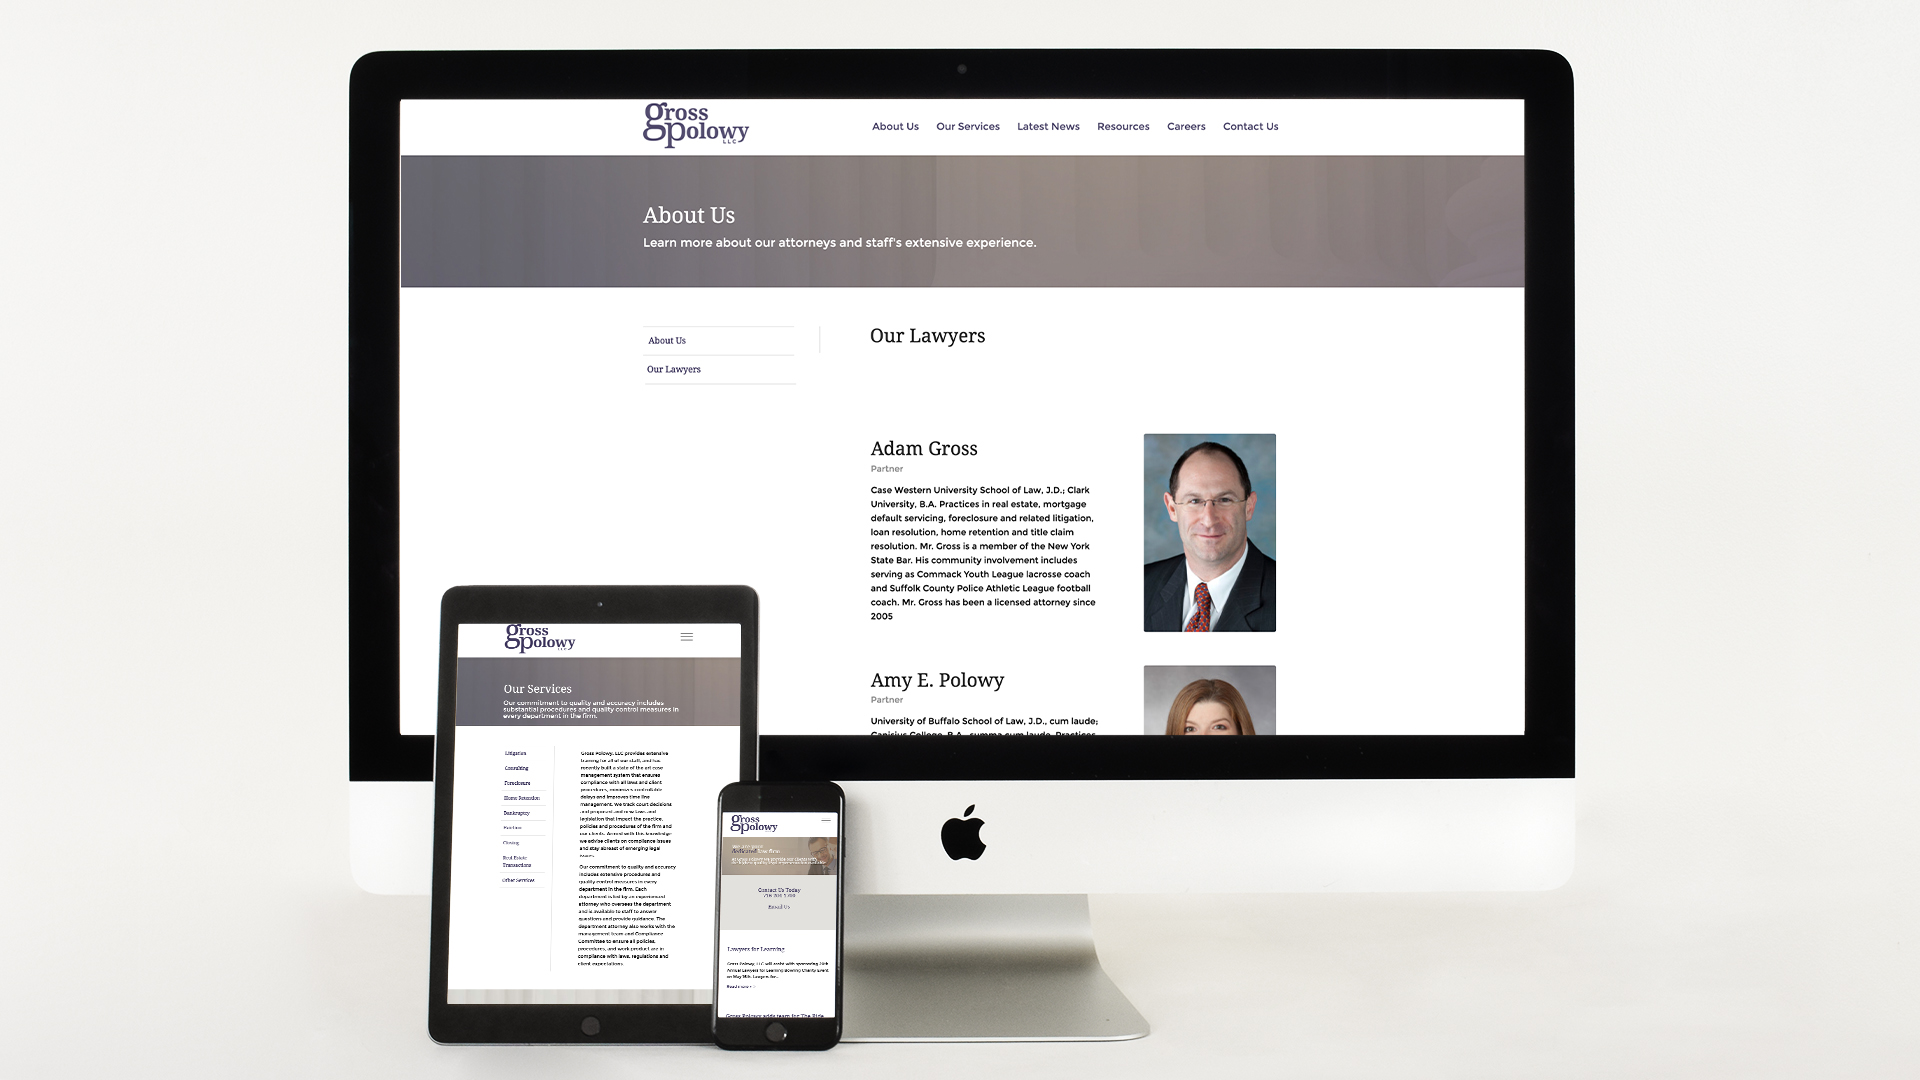 Website design, Mobile responsive, devices, Law Firm, branding